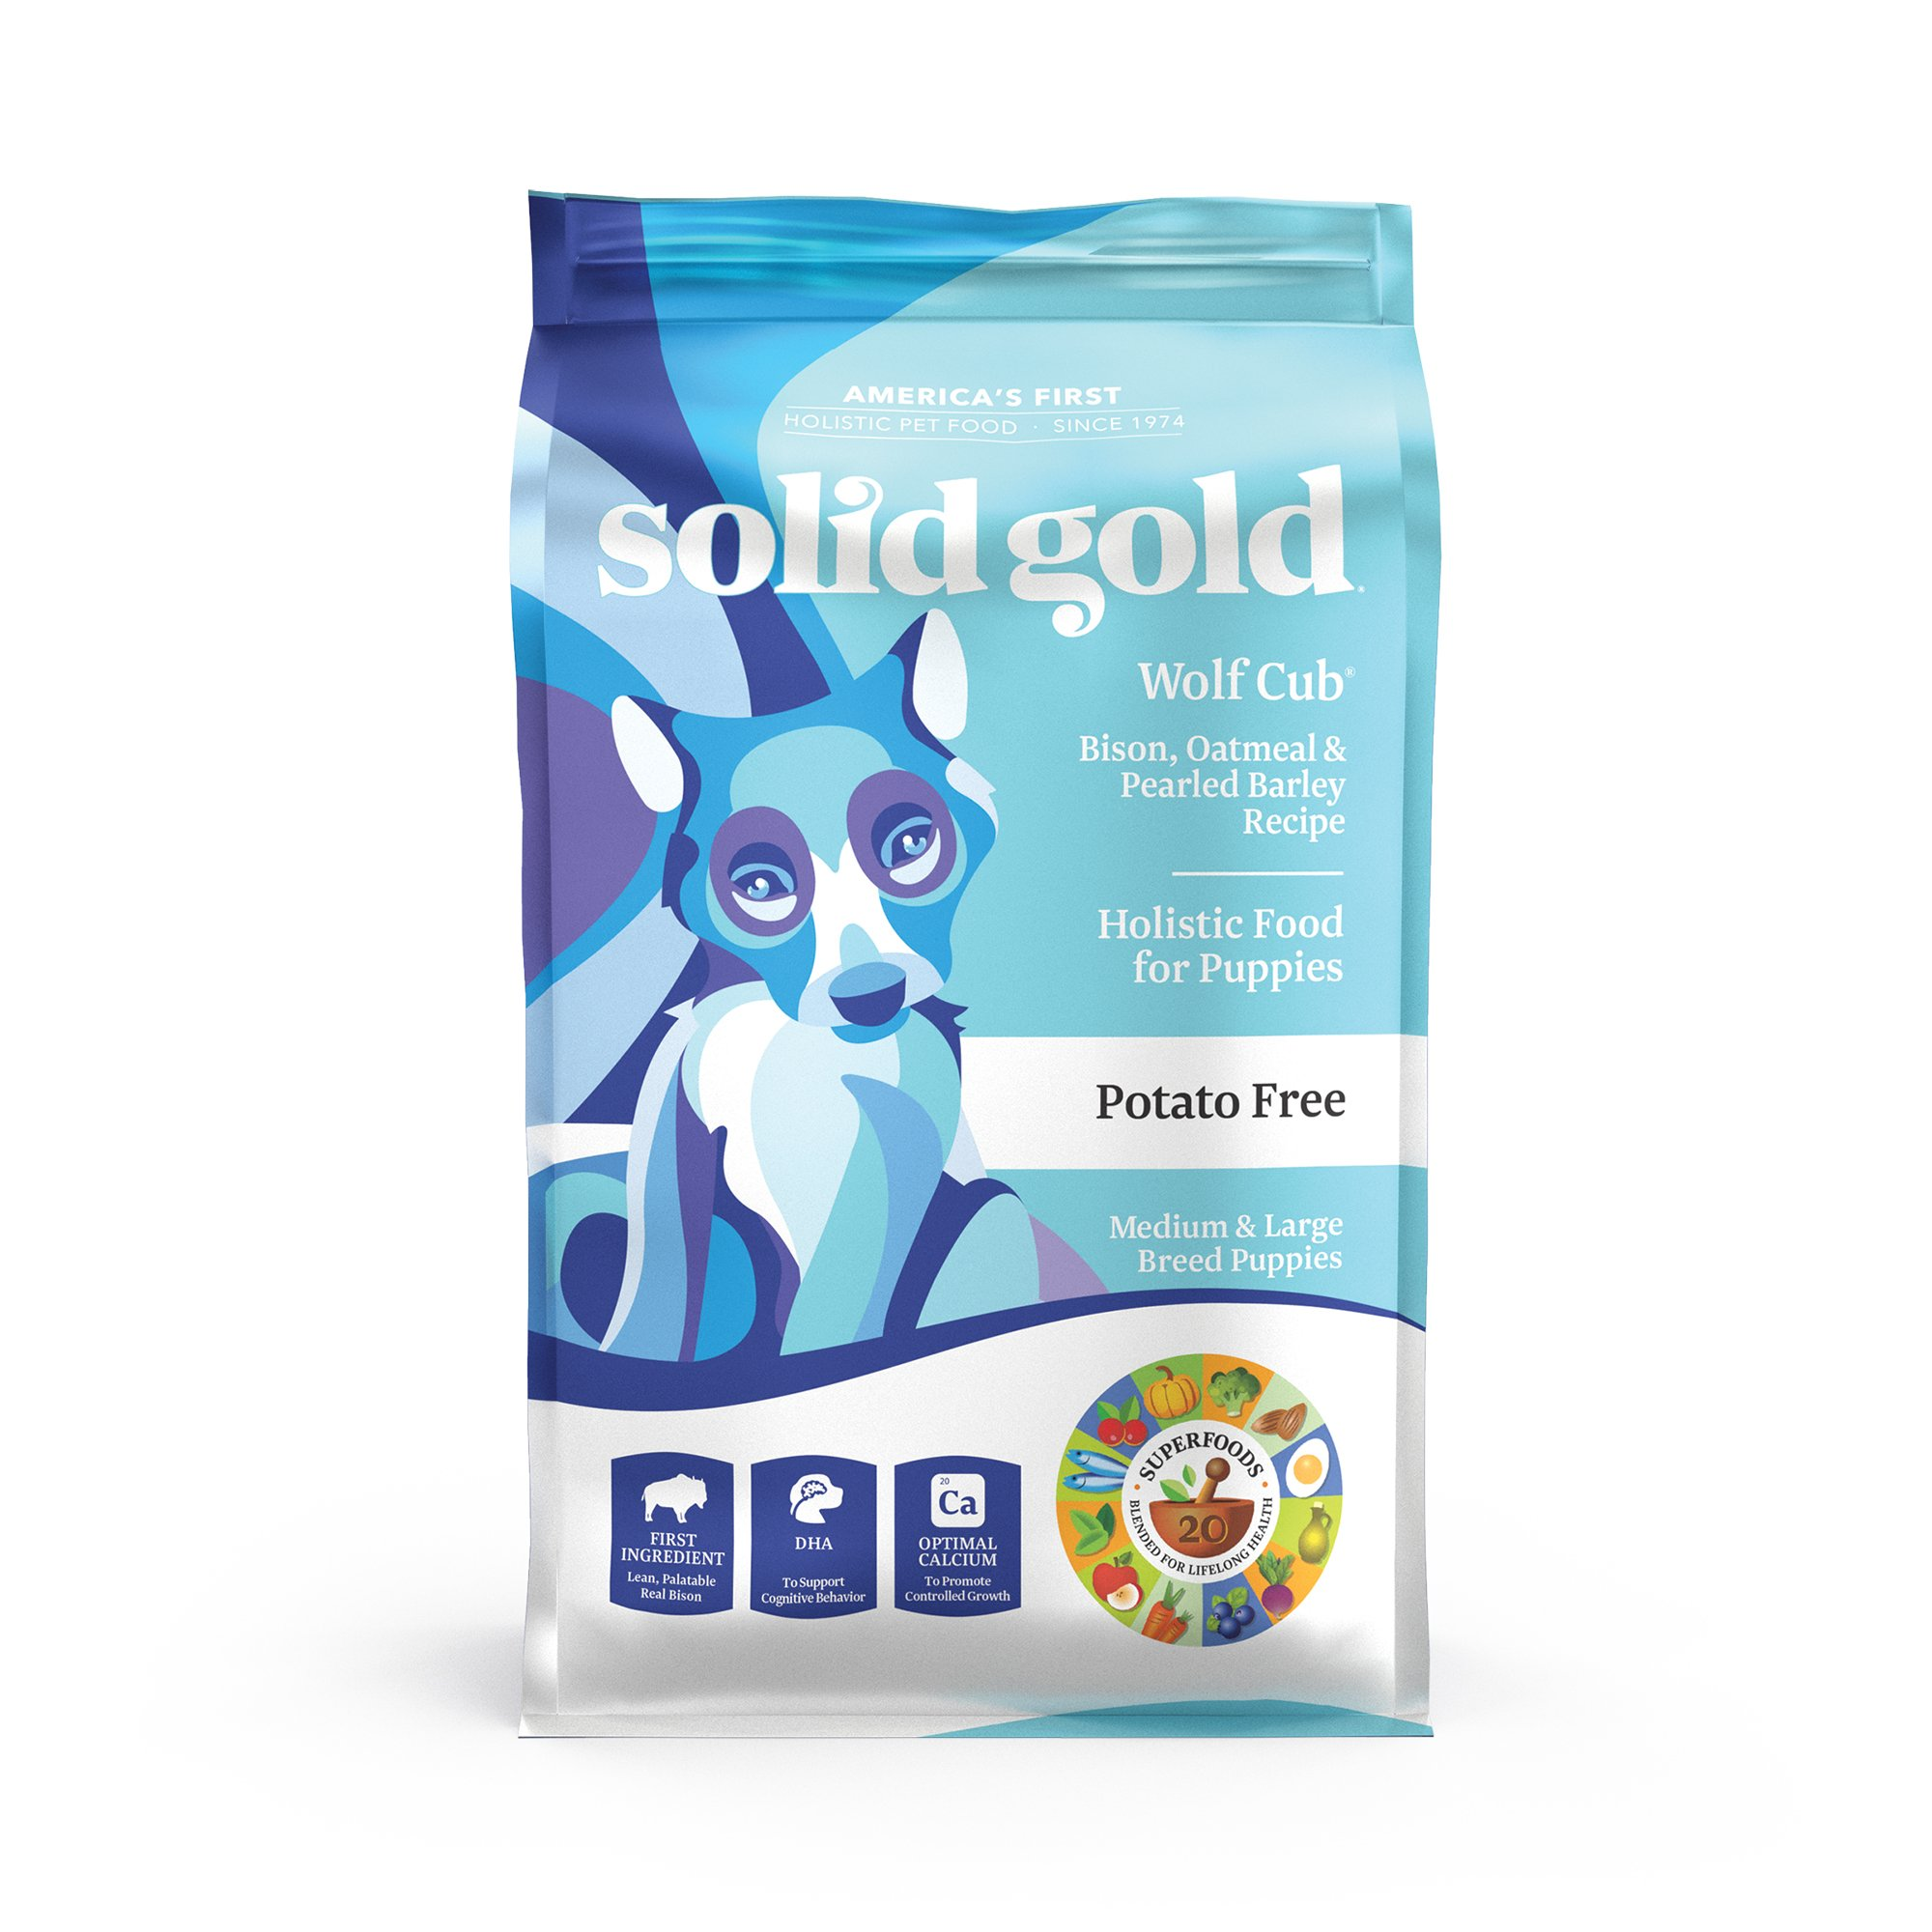 Solid Gold Large Breed Puppy Dry Food; Wolf Cub with Real Bison & Oatmeal; 24 lb